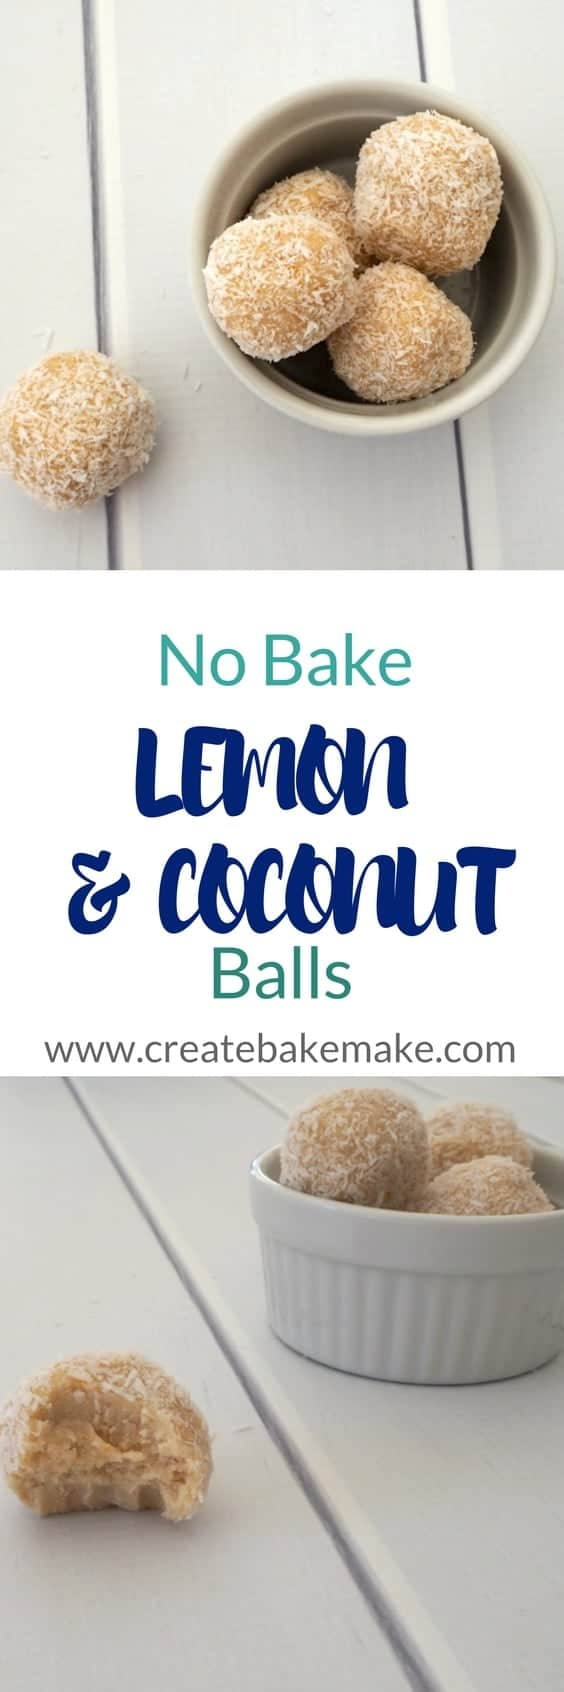 No Bake Lemon and Coconut Balls Recipe